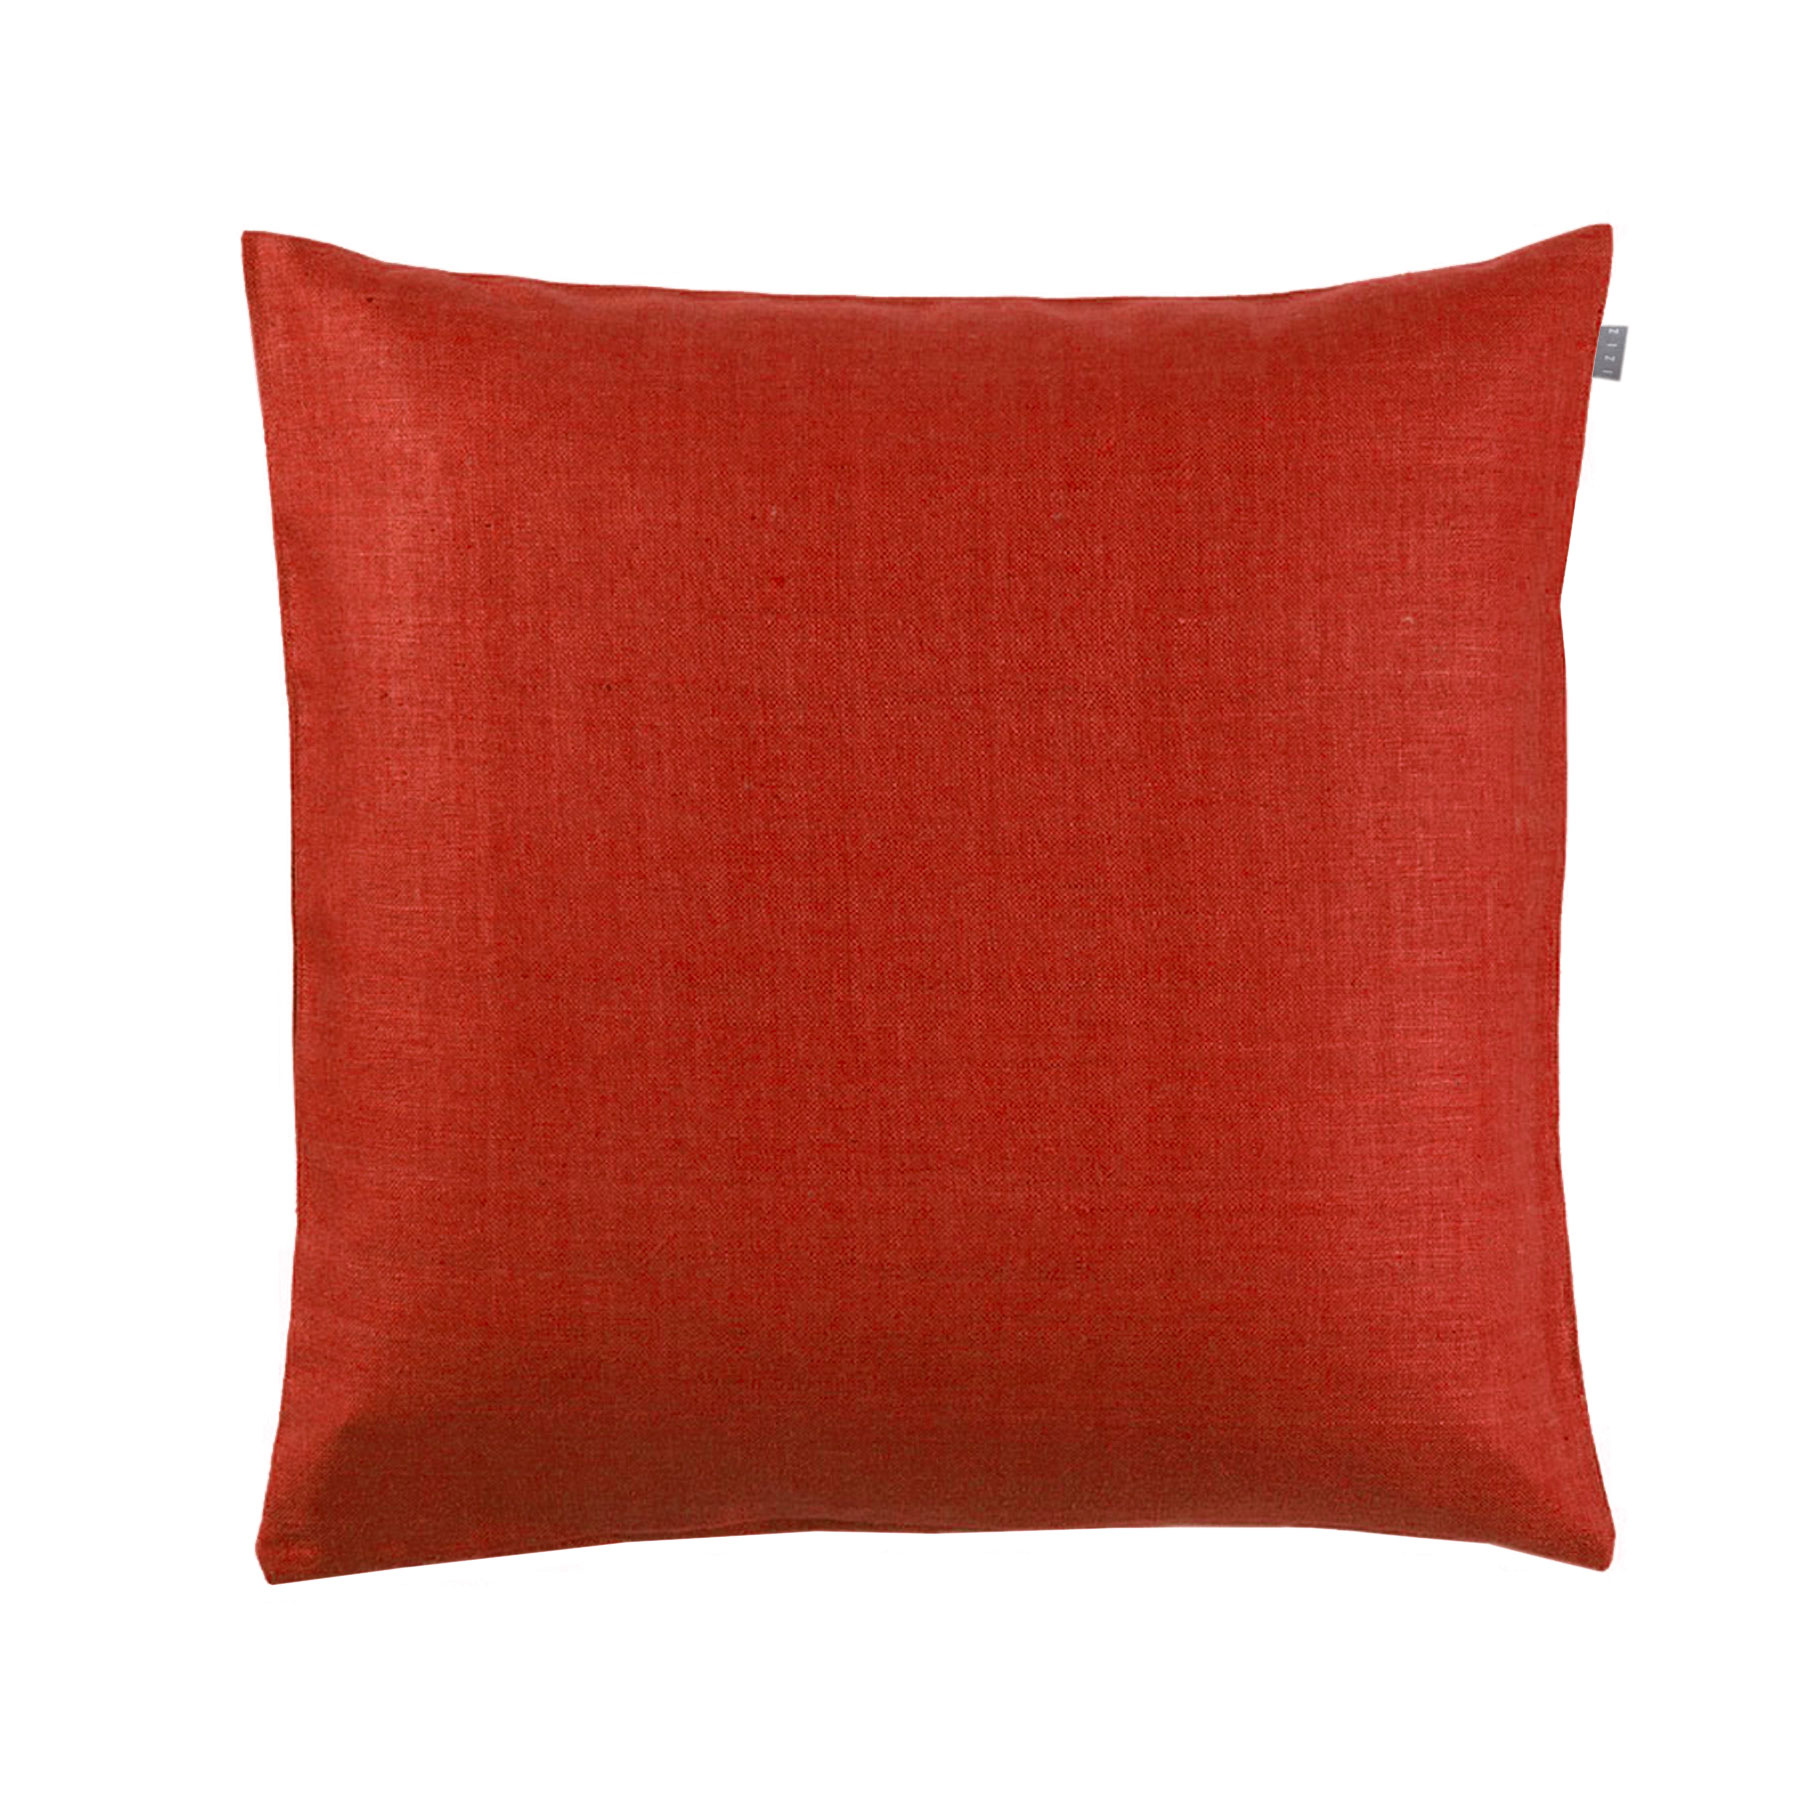 CUSHION COVER PLAIN <br />red